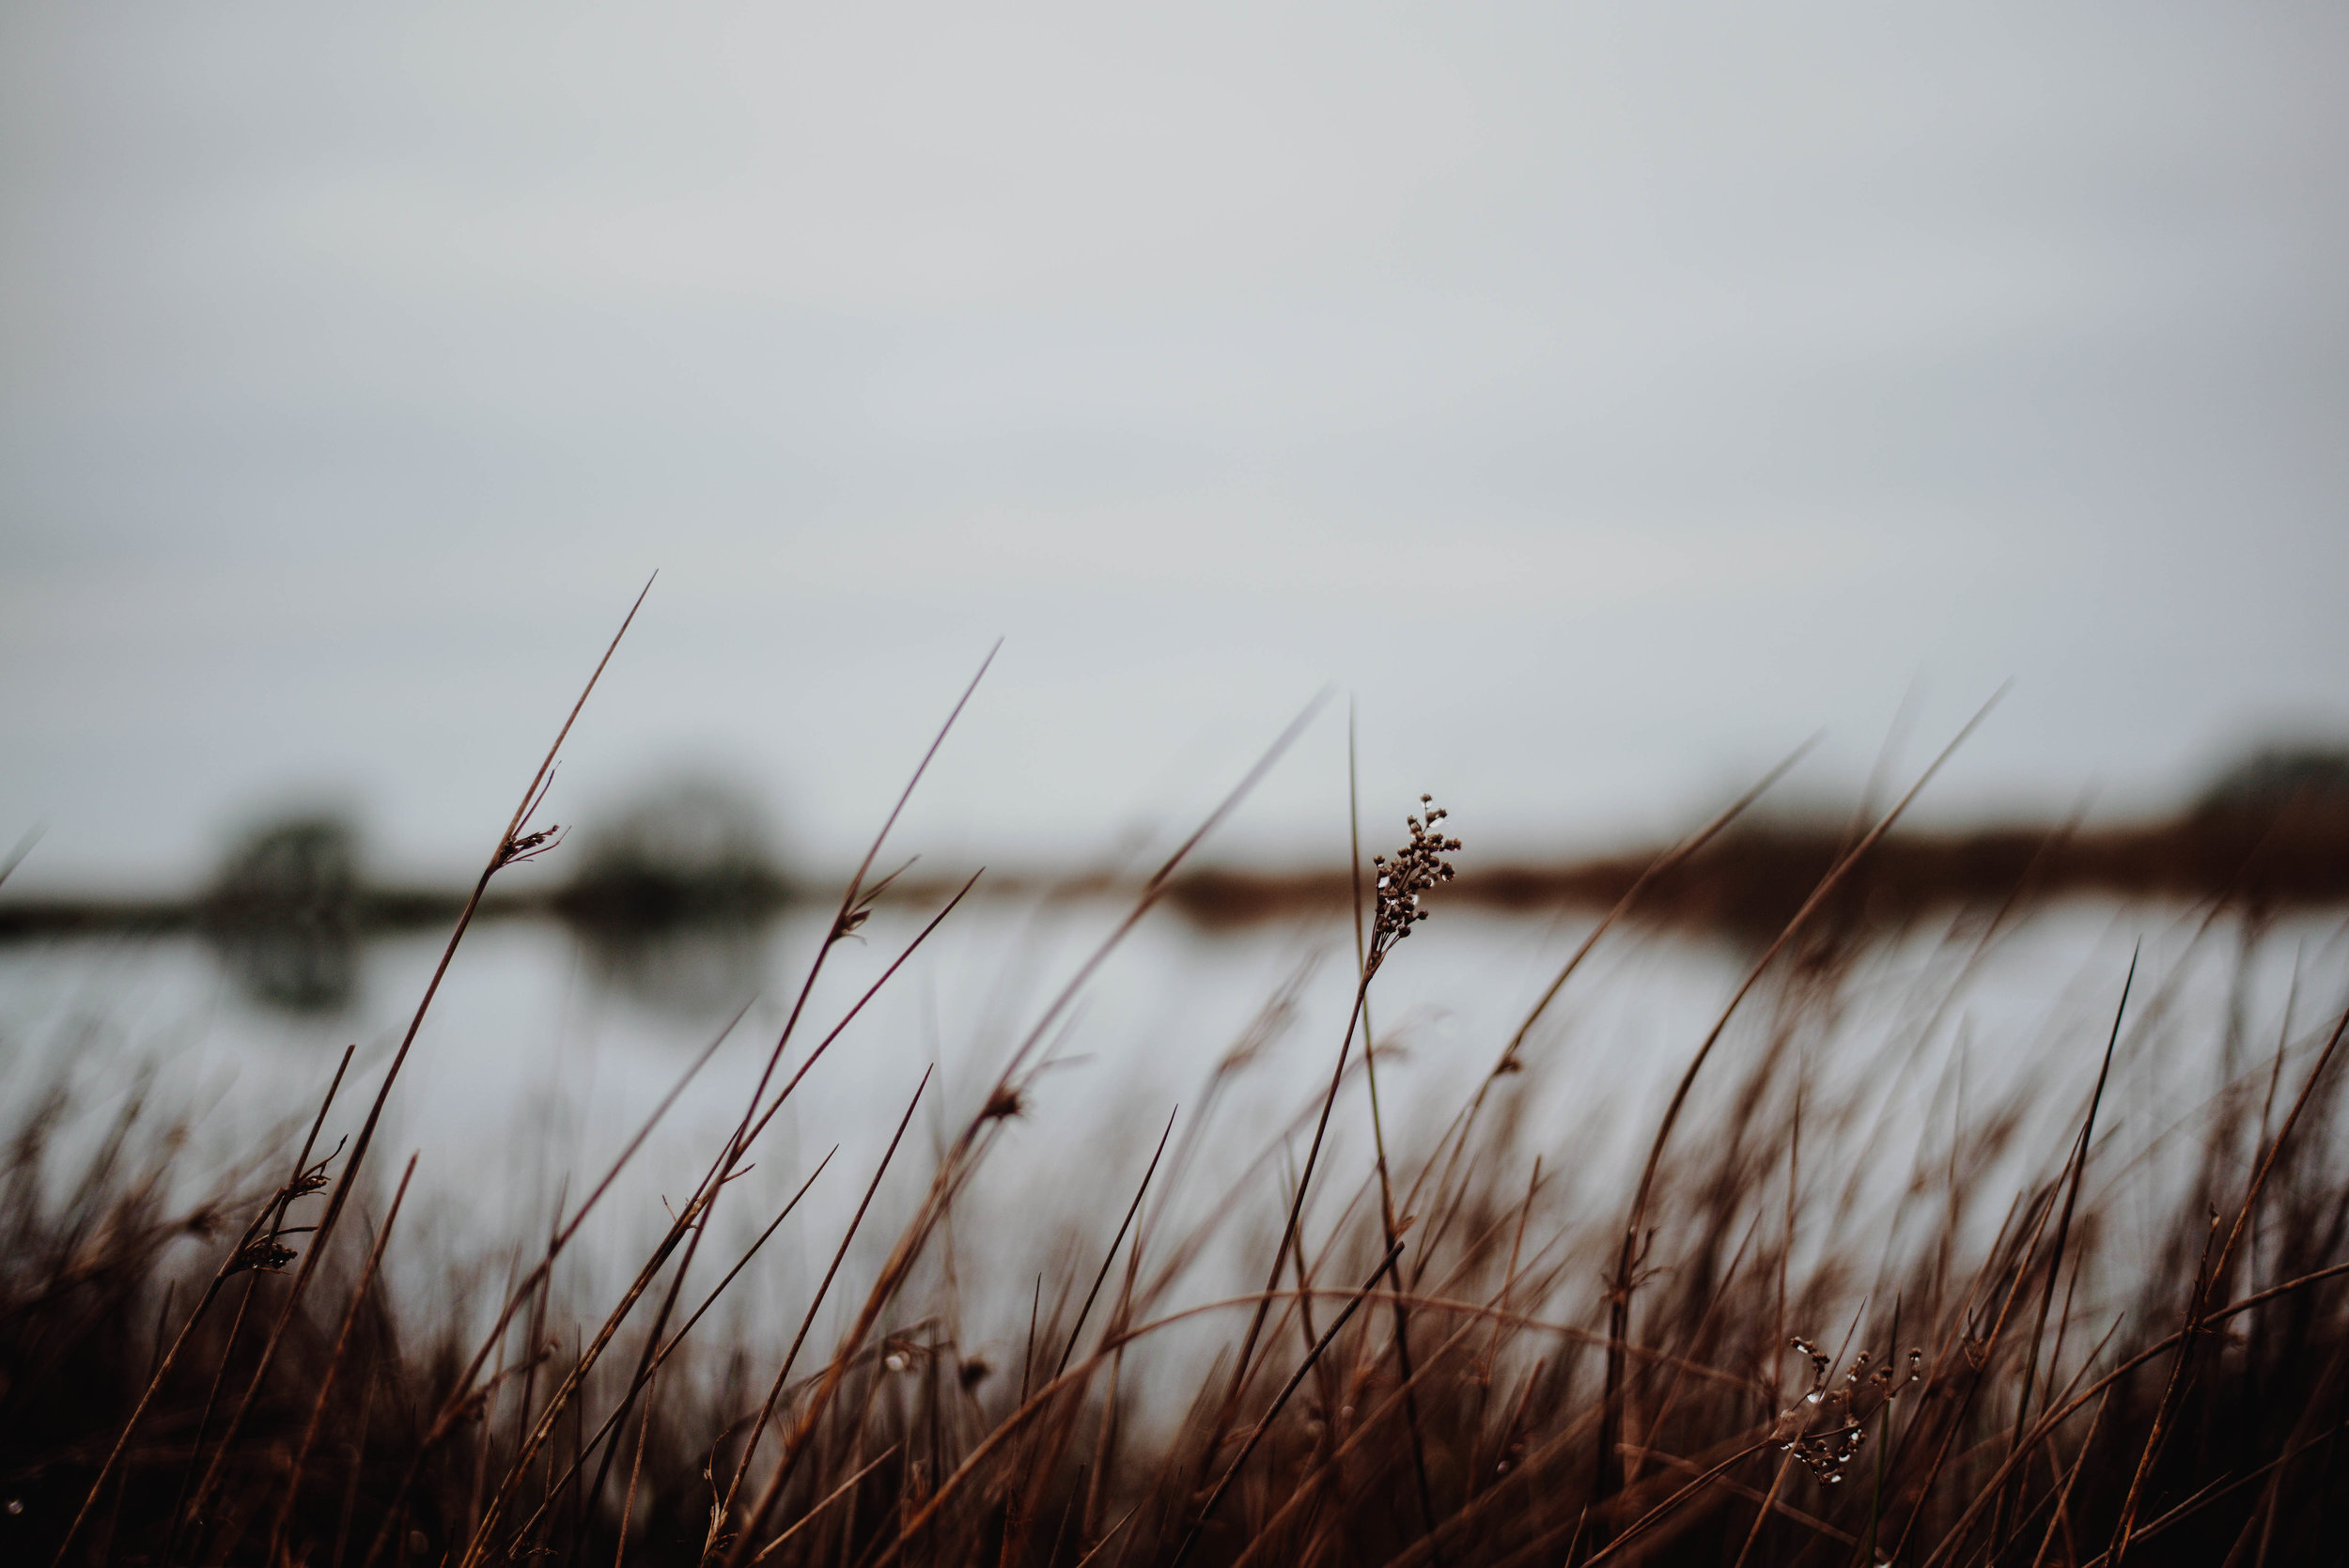 Don't be afraid to look for different angles and perspectives.  SS:1/640 F1.8 ISO:160 WB: Cloudy. 50mm Lens. Single Spot Focus.